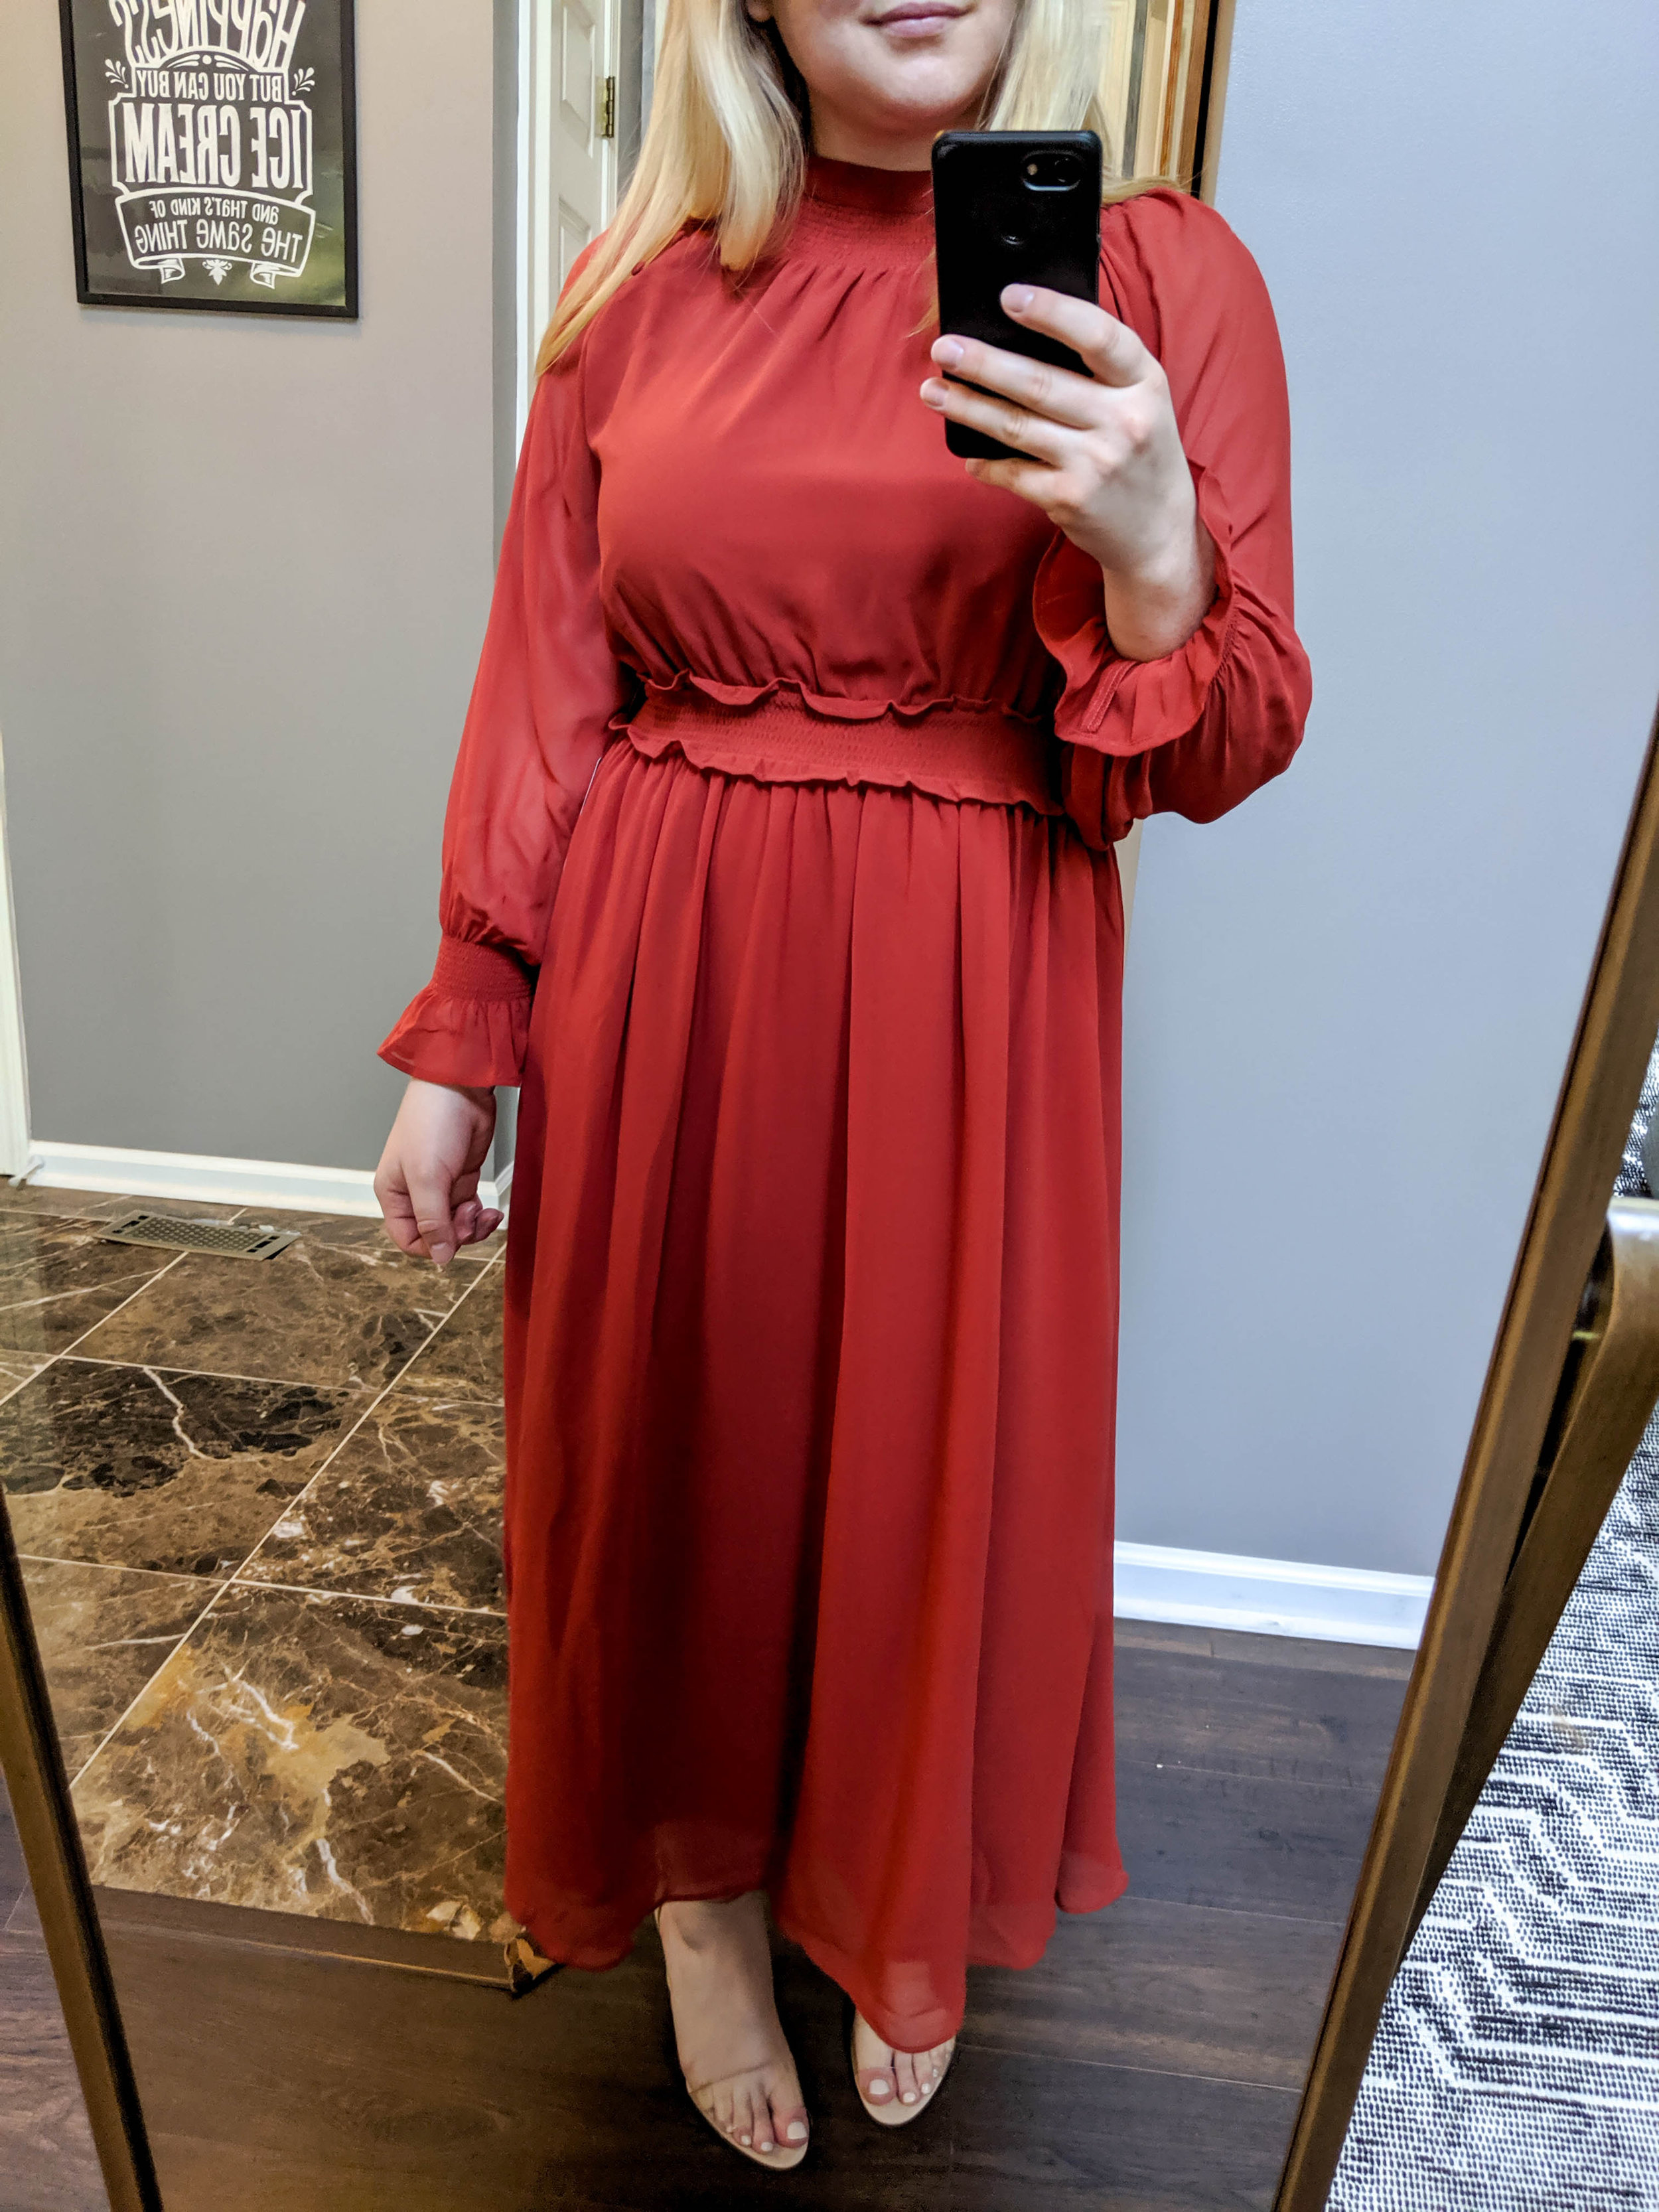 Maggie a la Mode 2019 Nordstrom Anniversary Sale Review Try On Real Body Chelsea28 Smocked Neck Long Sleeve Chiffon Midi Dress Vince Camuto Corlina Ankle Strap Sandal